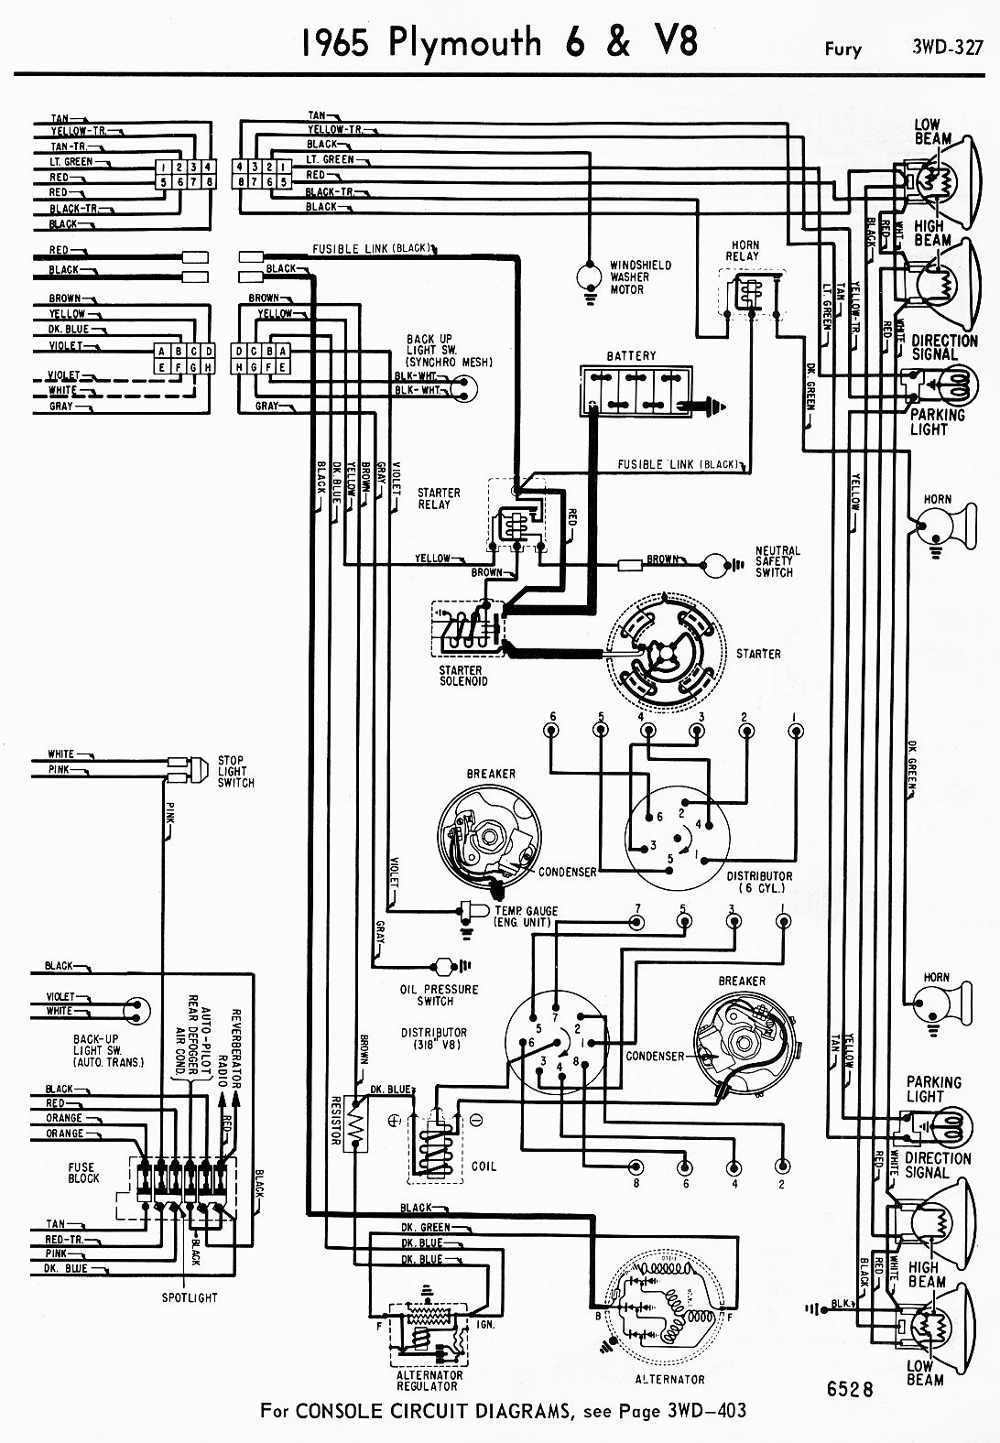 301xi Find Wiring Diagram Stereo Harness additionally 2000 Ford F150 Fuse Box Diagram Full Size Image 1999 in addition 2000 Ford Focus Zts Radio Wiring Diagram likewise 96 Ford Windstar Fuse Box Diagram additionally 1991 Ford F150 Engine Diagram. on ford ranger fuse box diagram